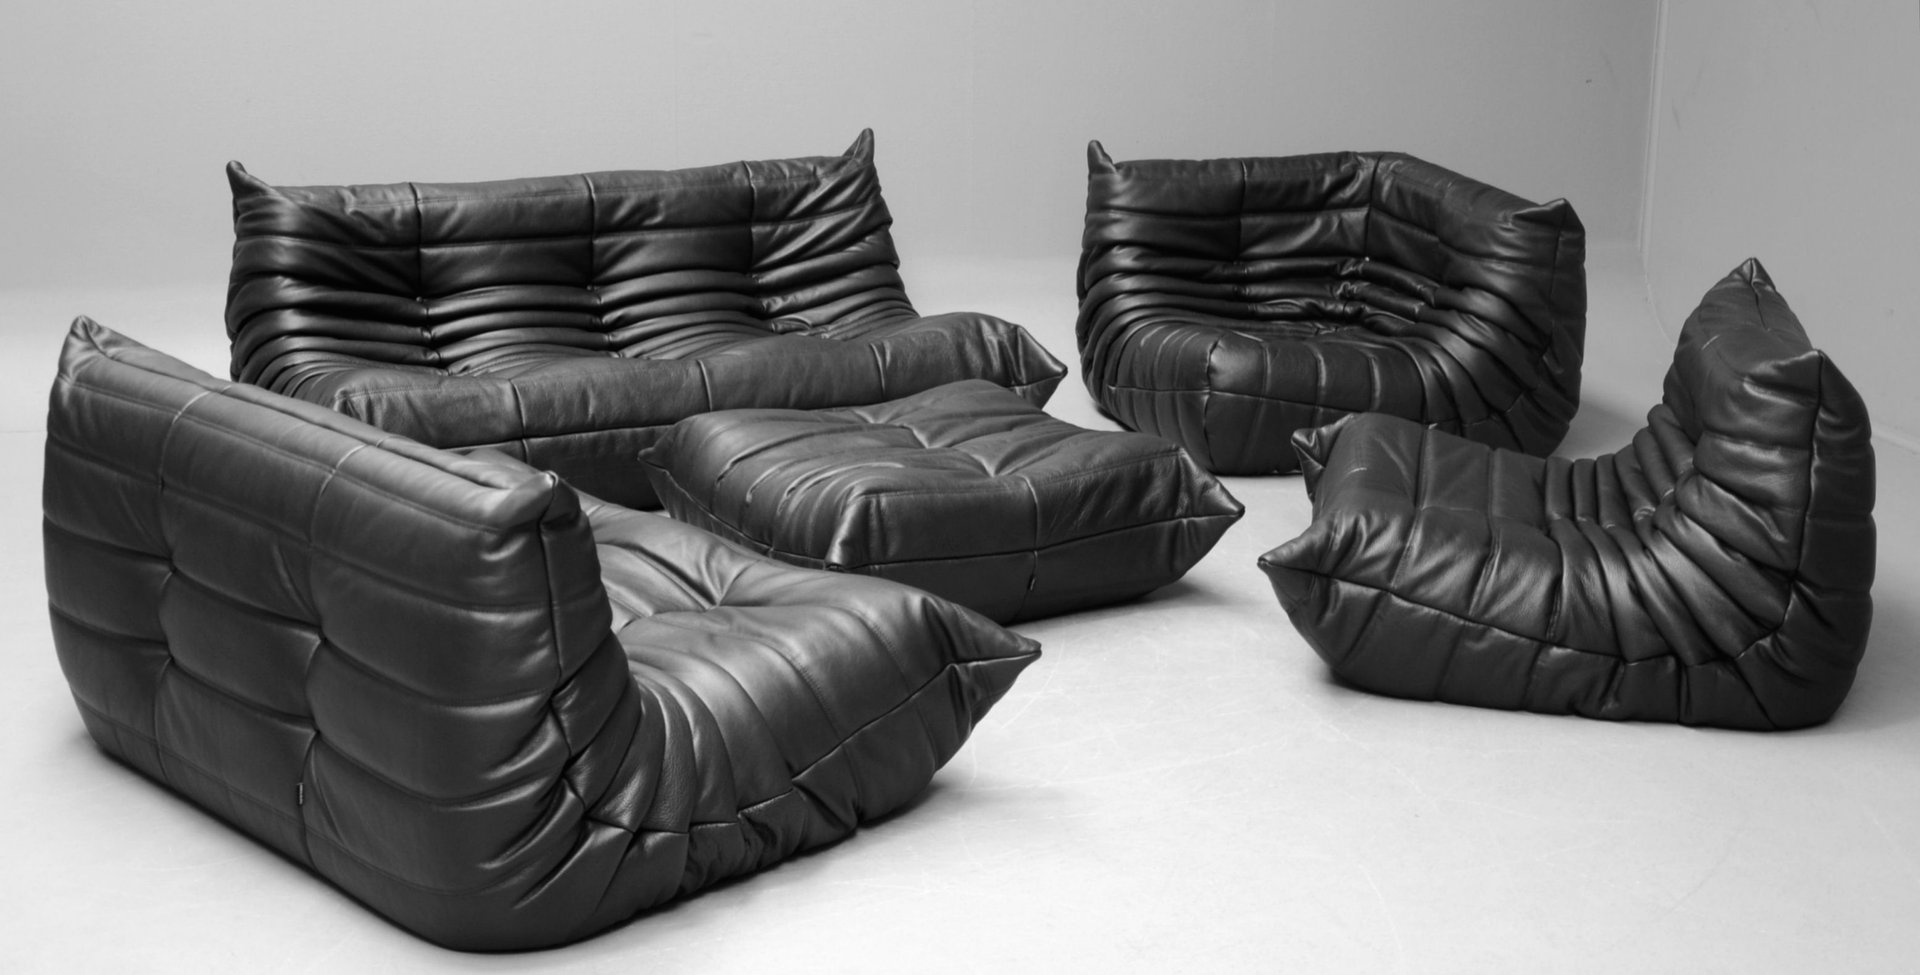 schwarze vintage togo ledersofagarnitur von michel ducaroy f r ligne roset bei pamono kaufen. Black Bedroom Furniture Sets. Home Design Ideas